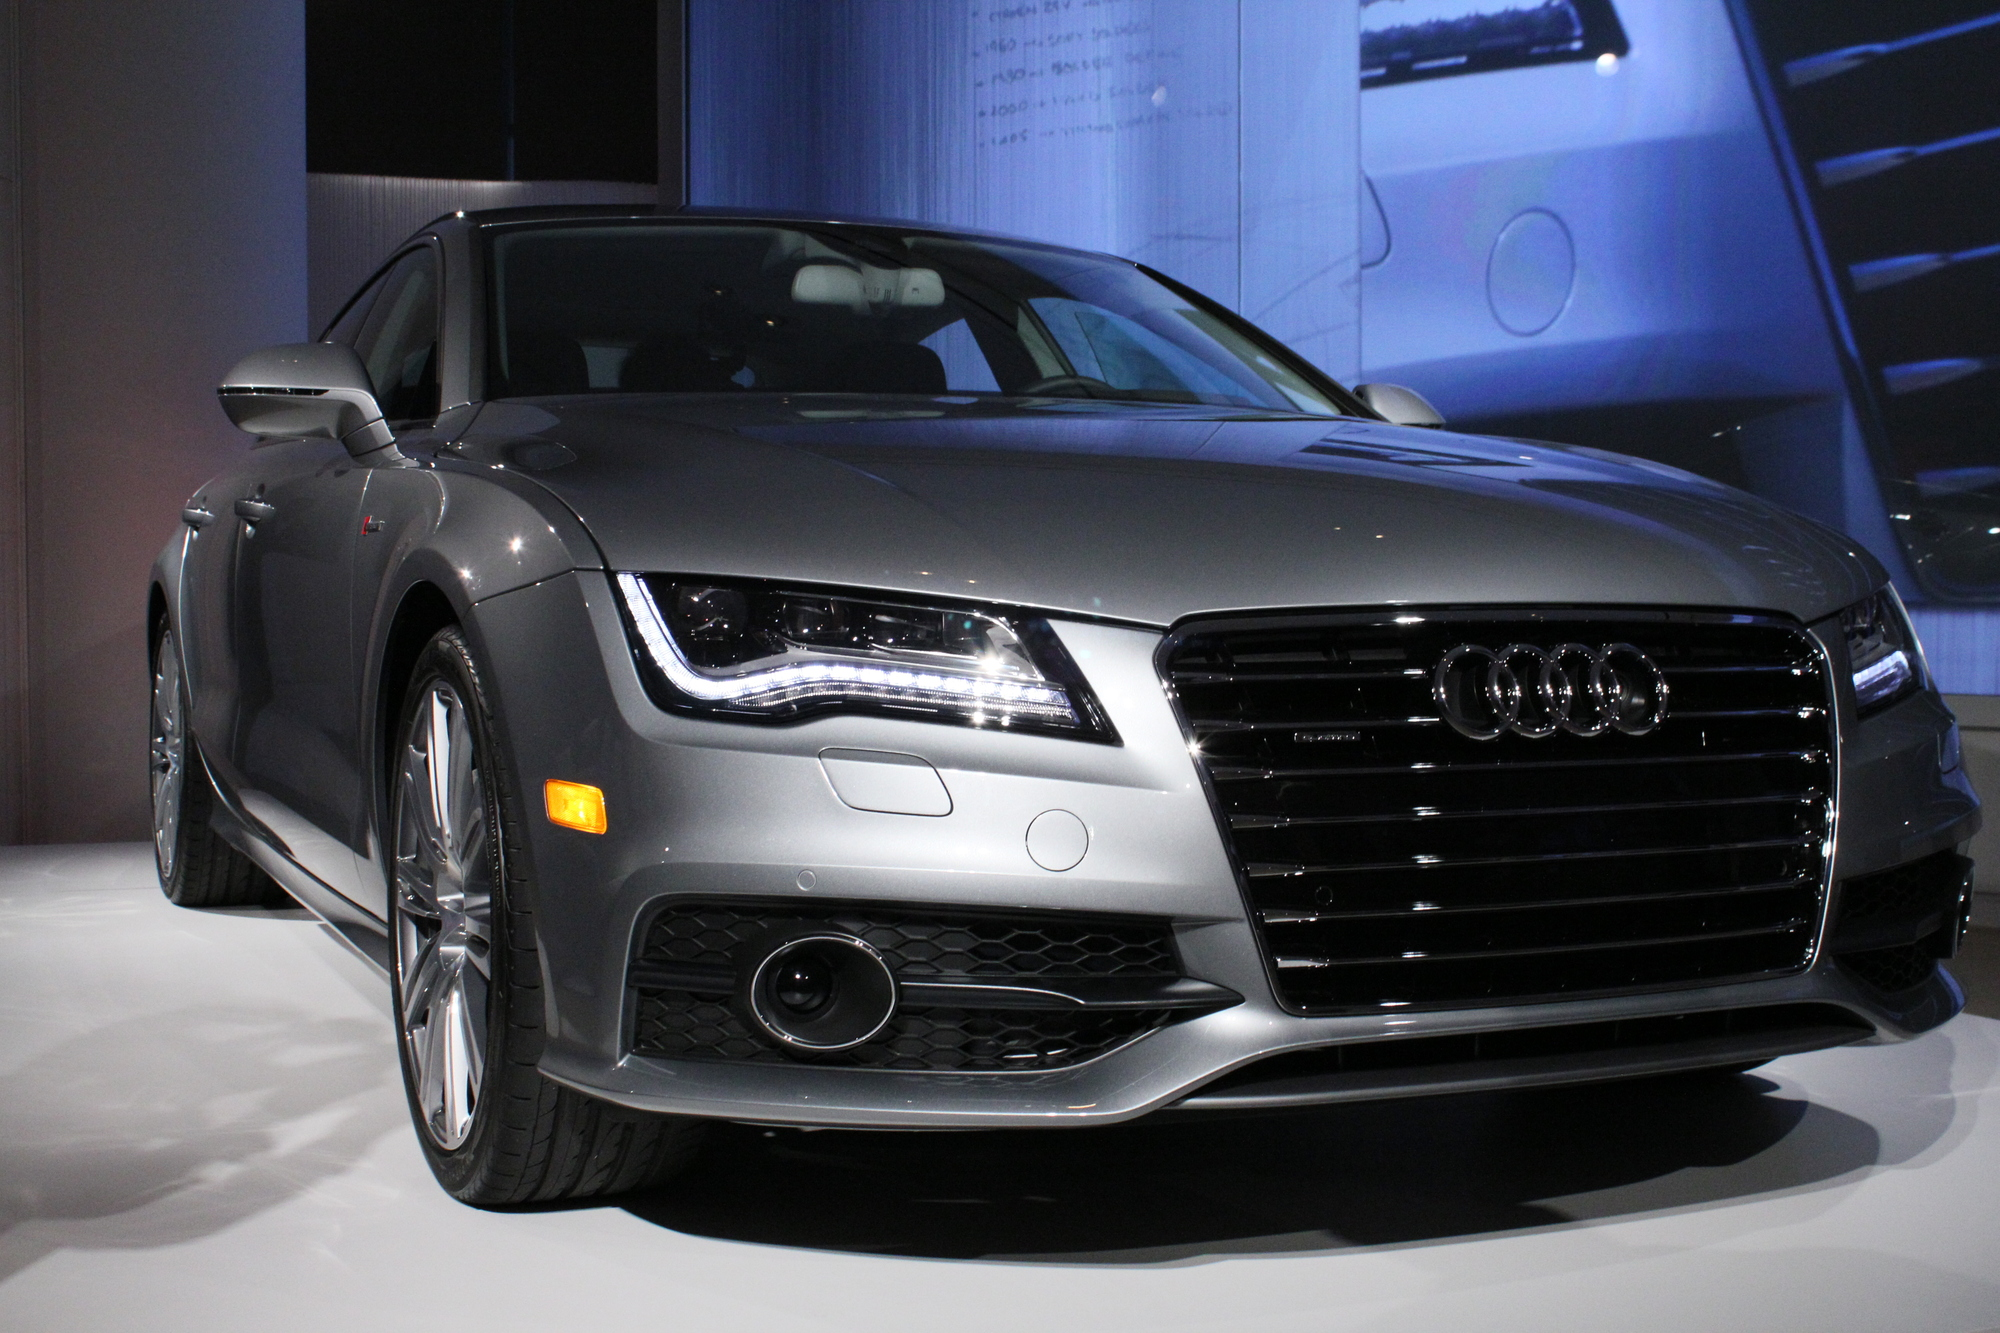 Audi Near Me >> 2012 Audi A7: Available In May, S7 To Follow